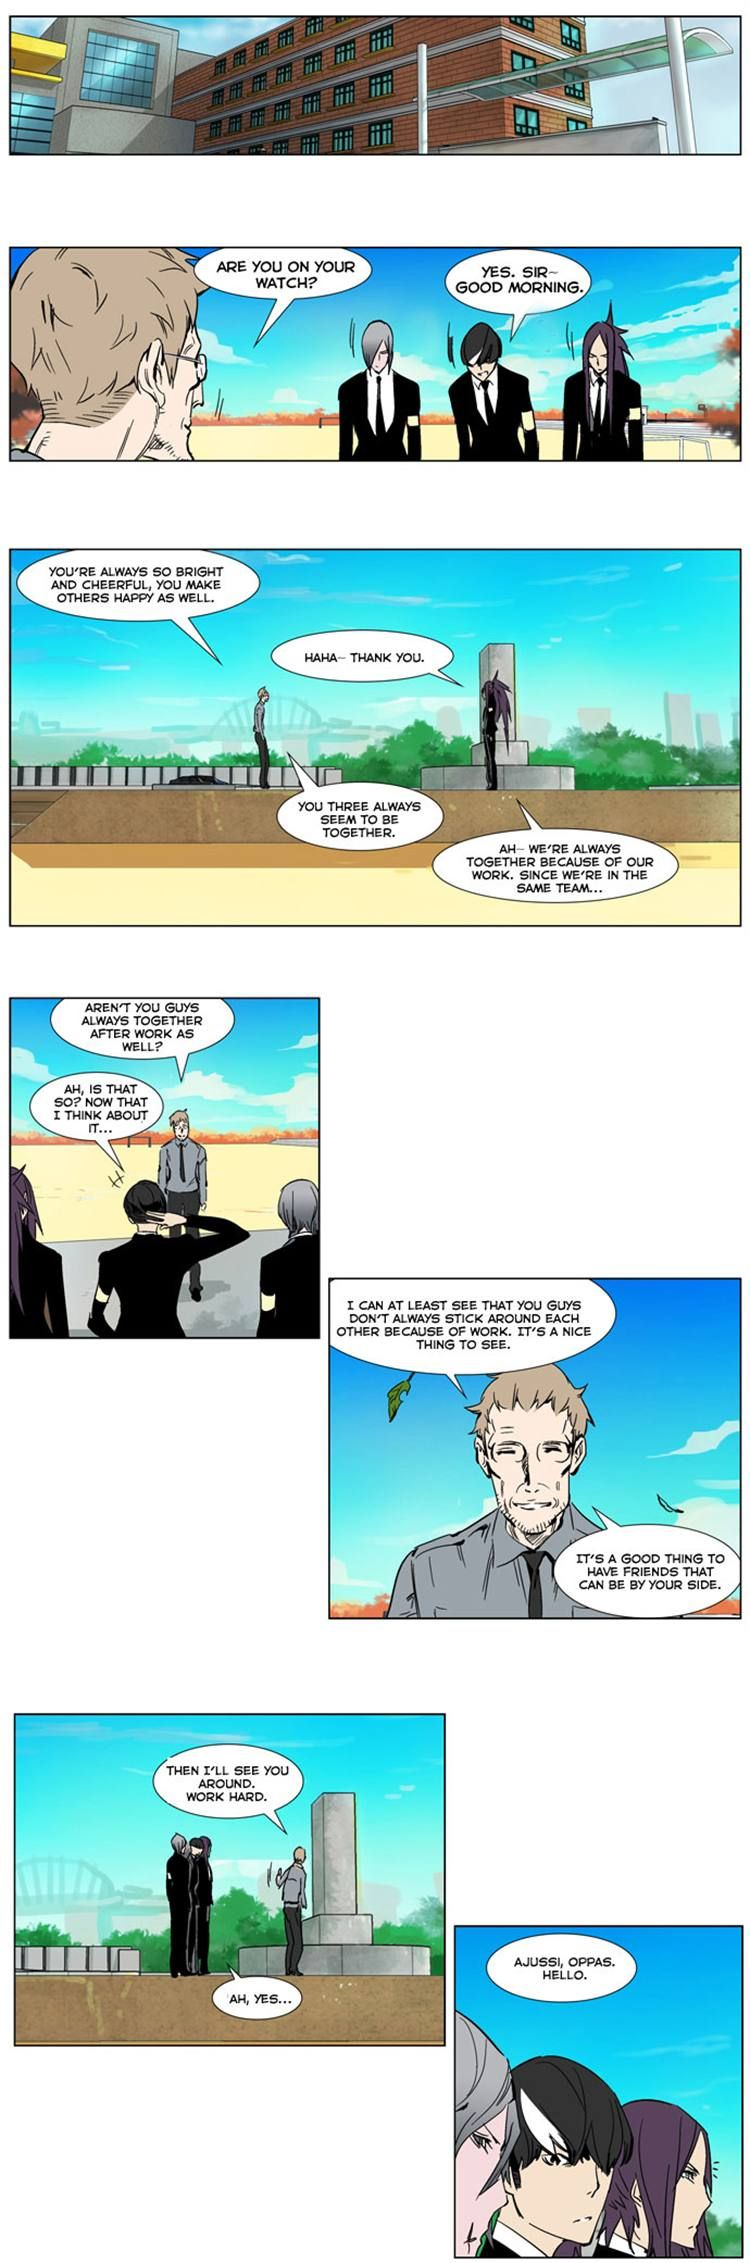 Noblesse 246 Page 2